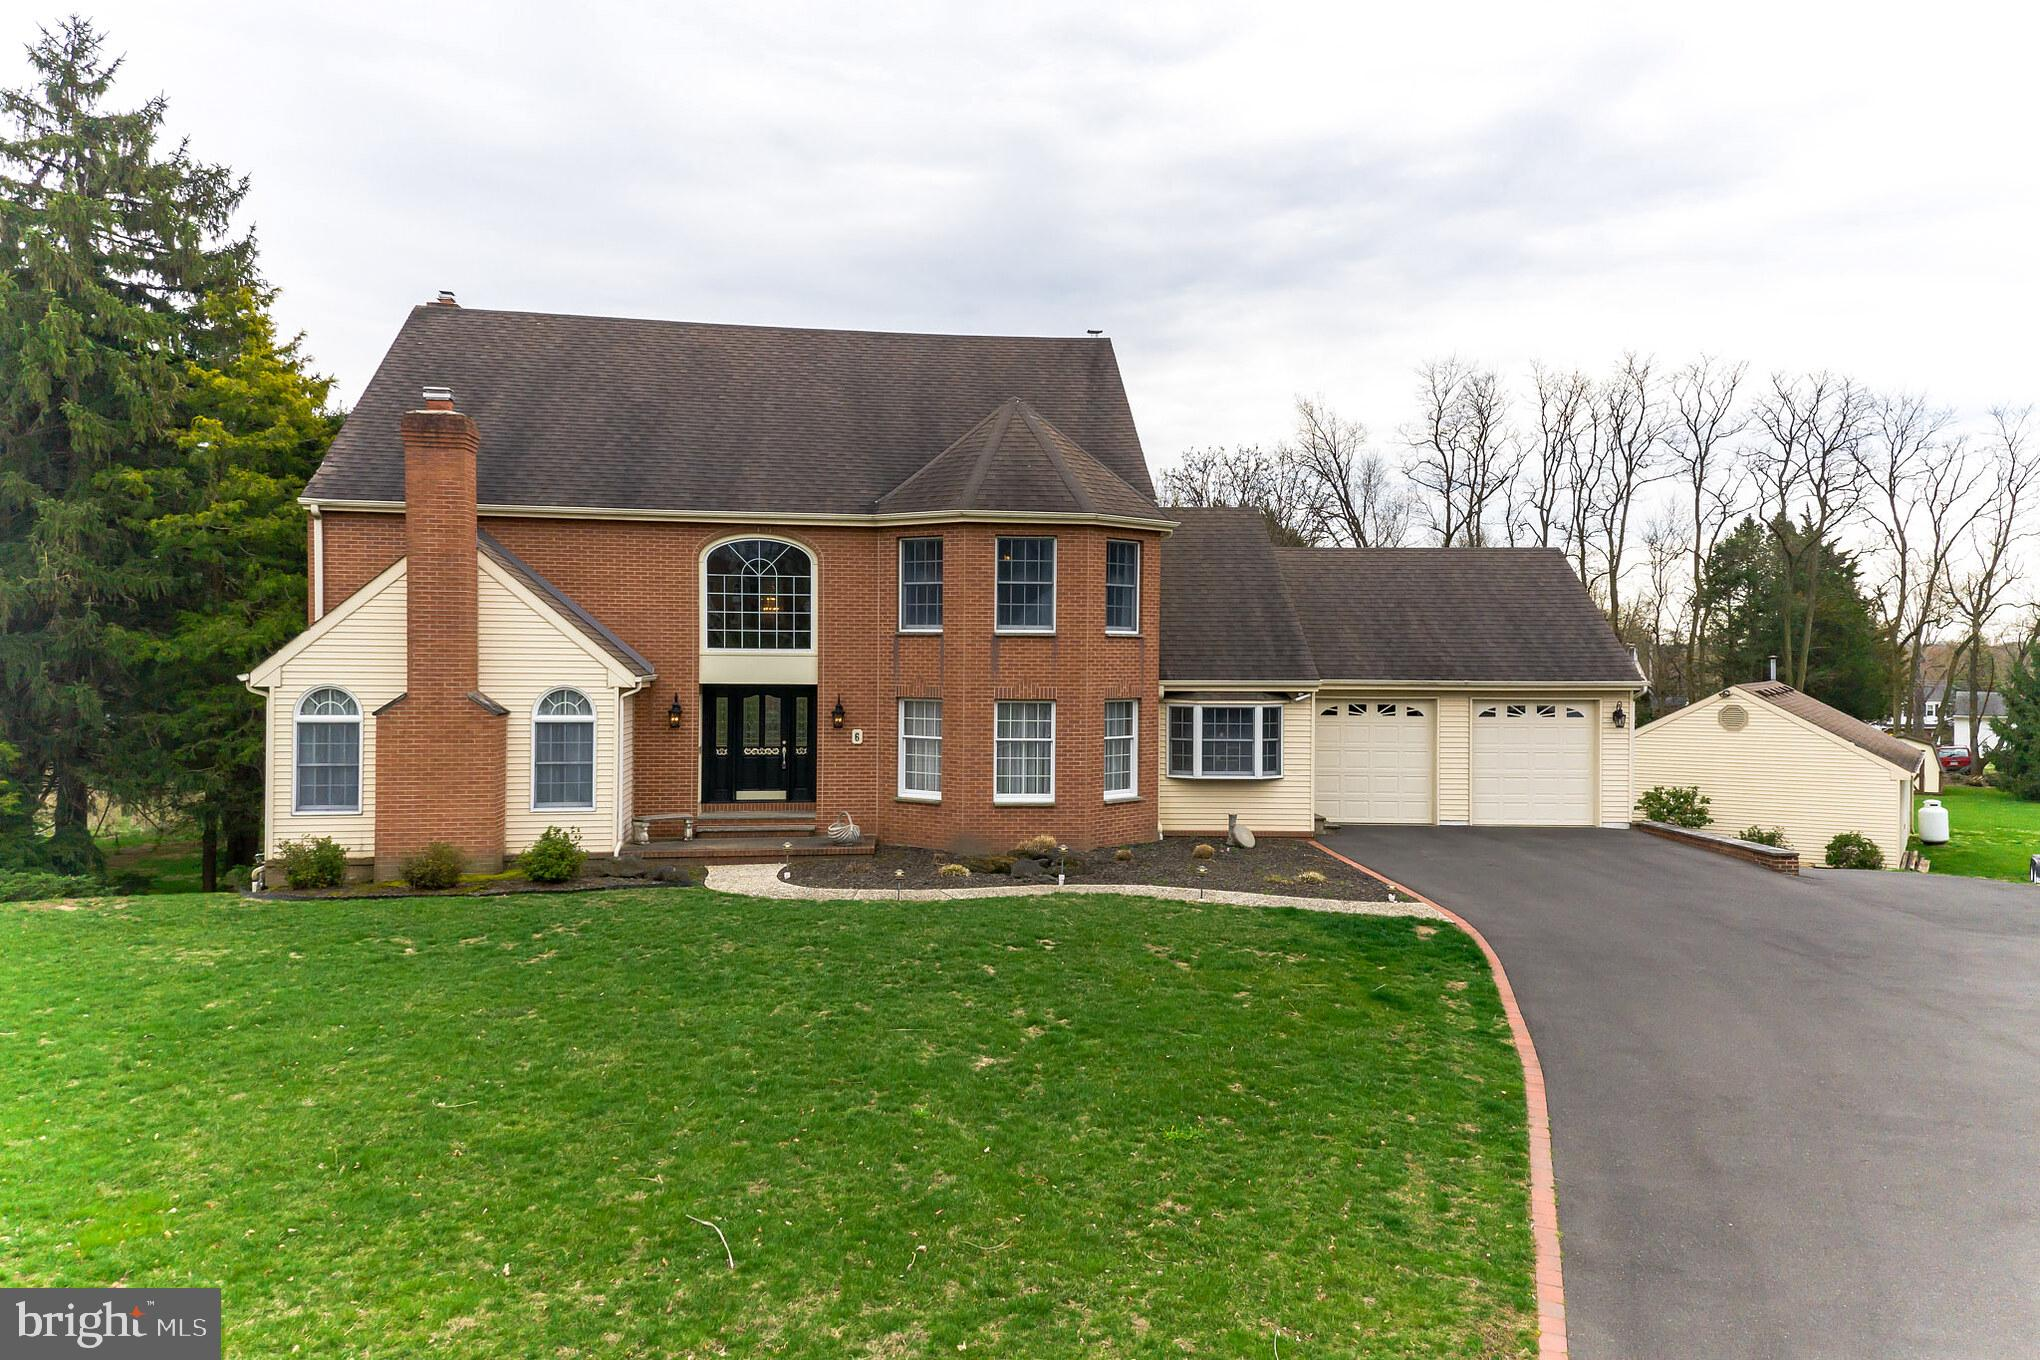 6 SWALLOW ROAD, HOLLAND, PA 18966